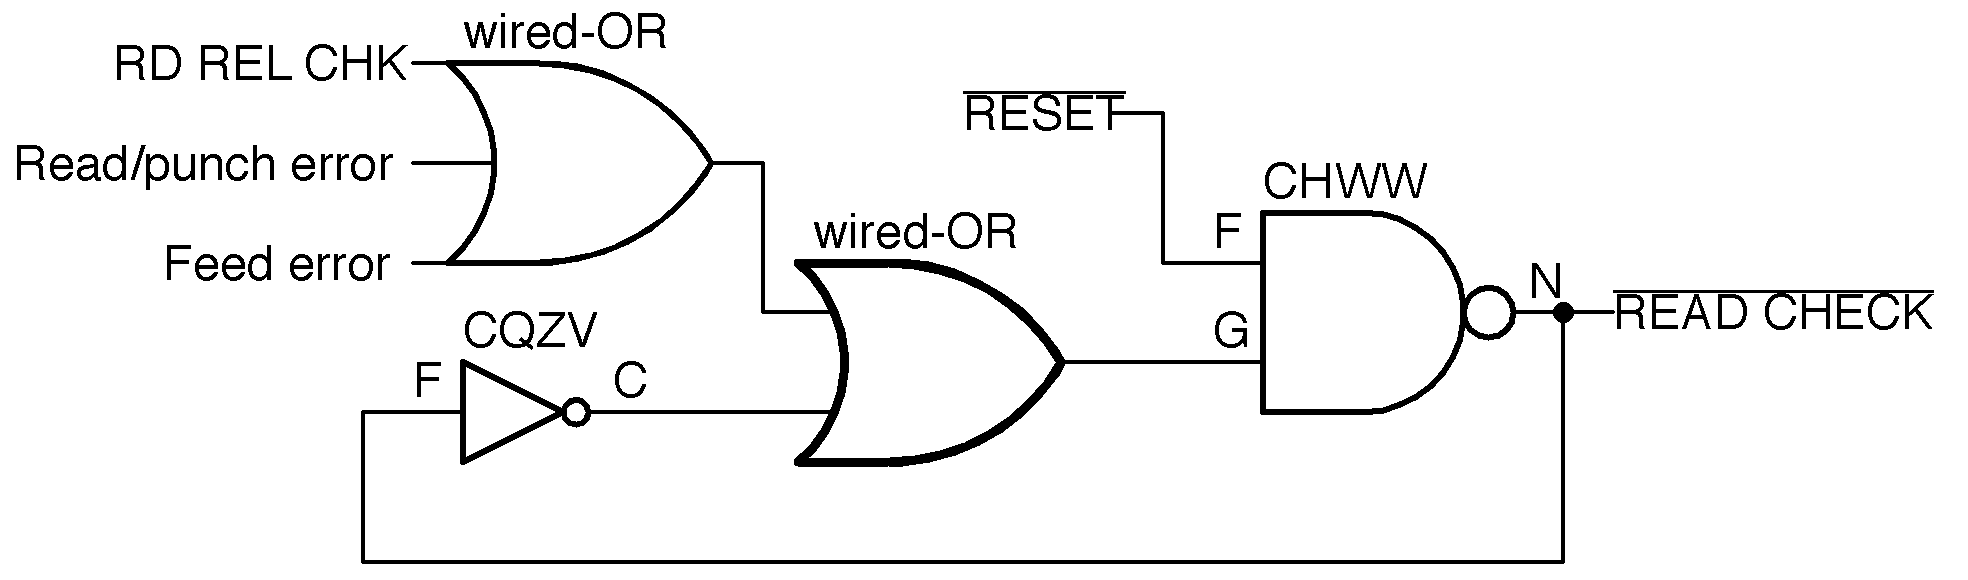 hight resolution of the read check latch circuit redrawn with modern symbols